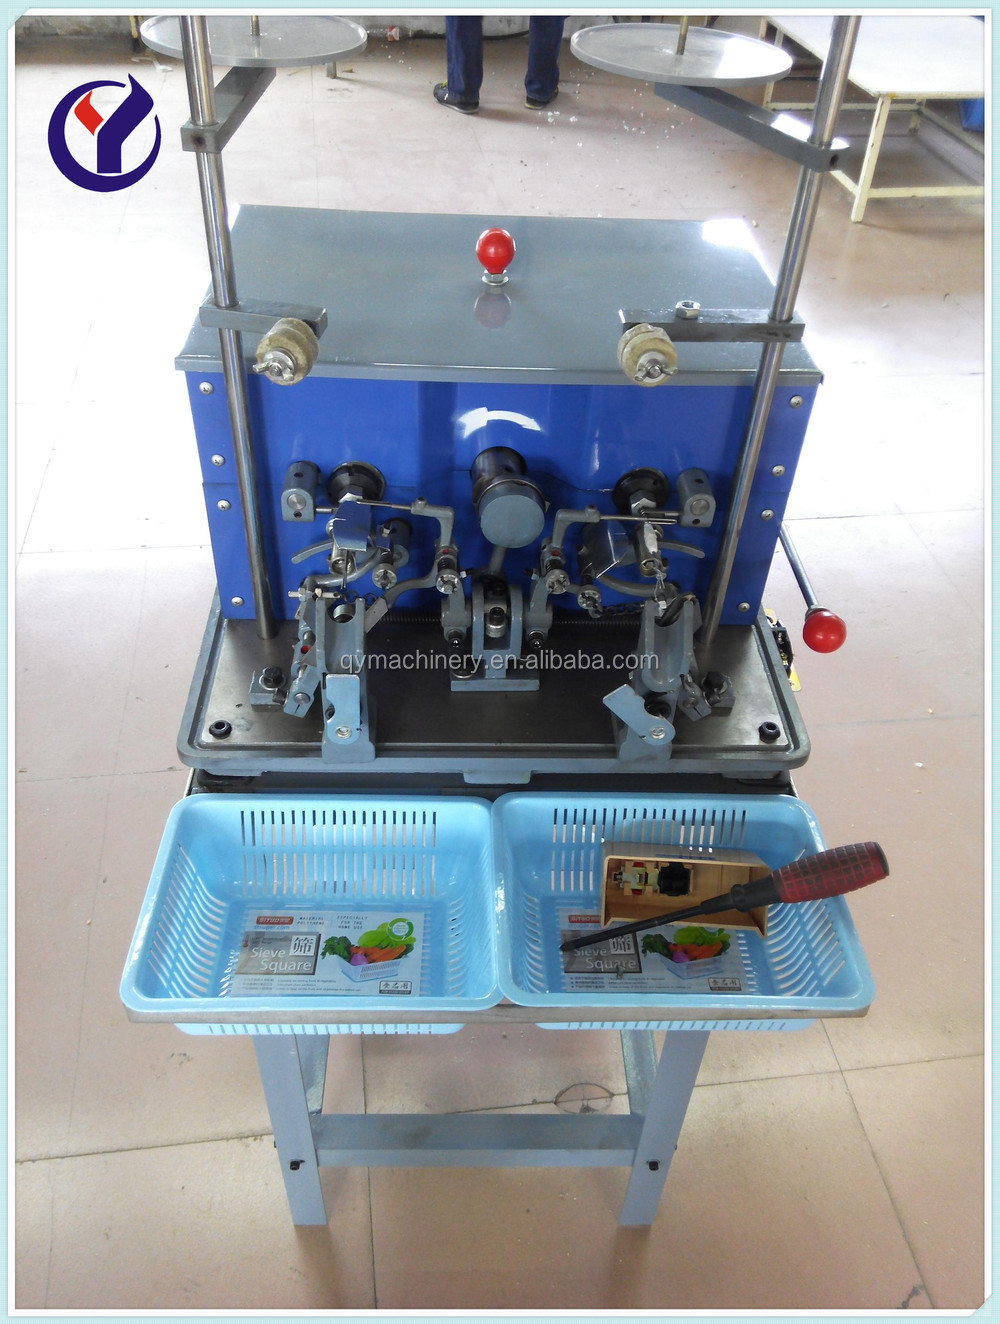 automatic winder machine